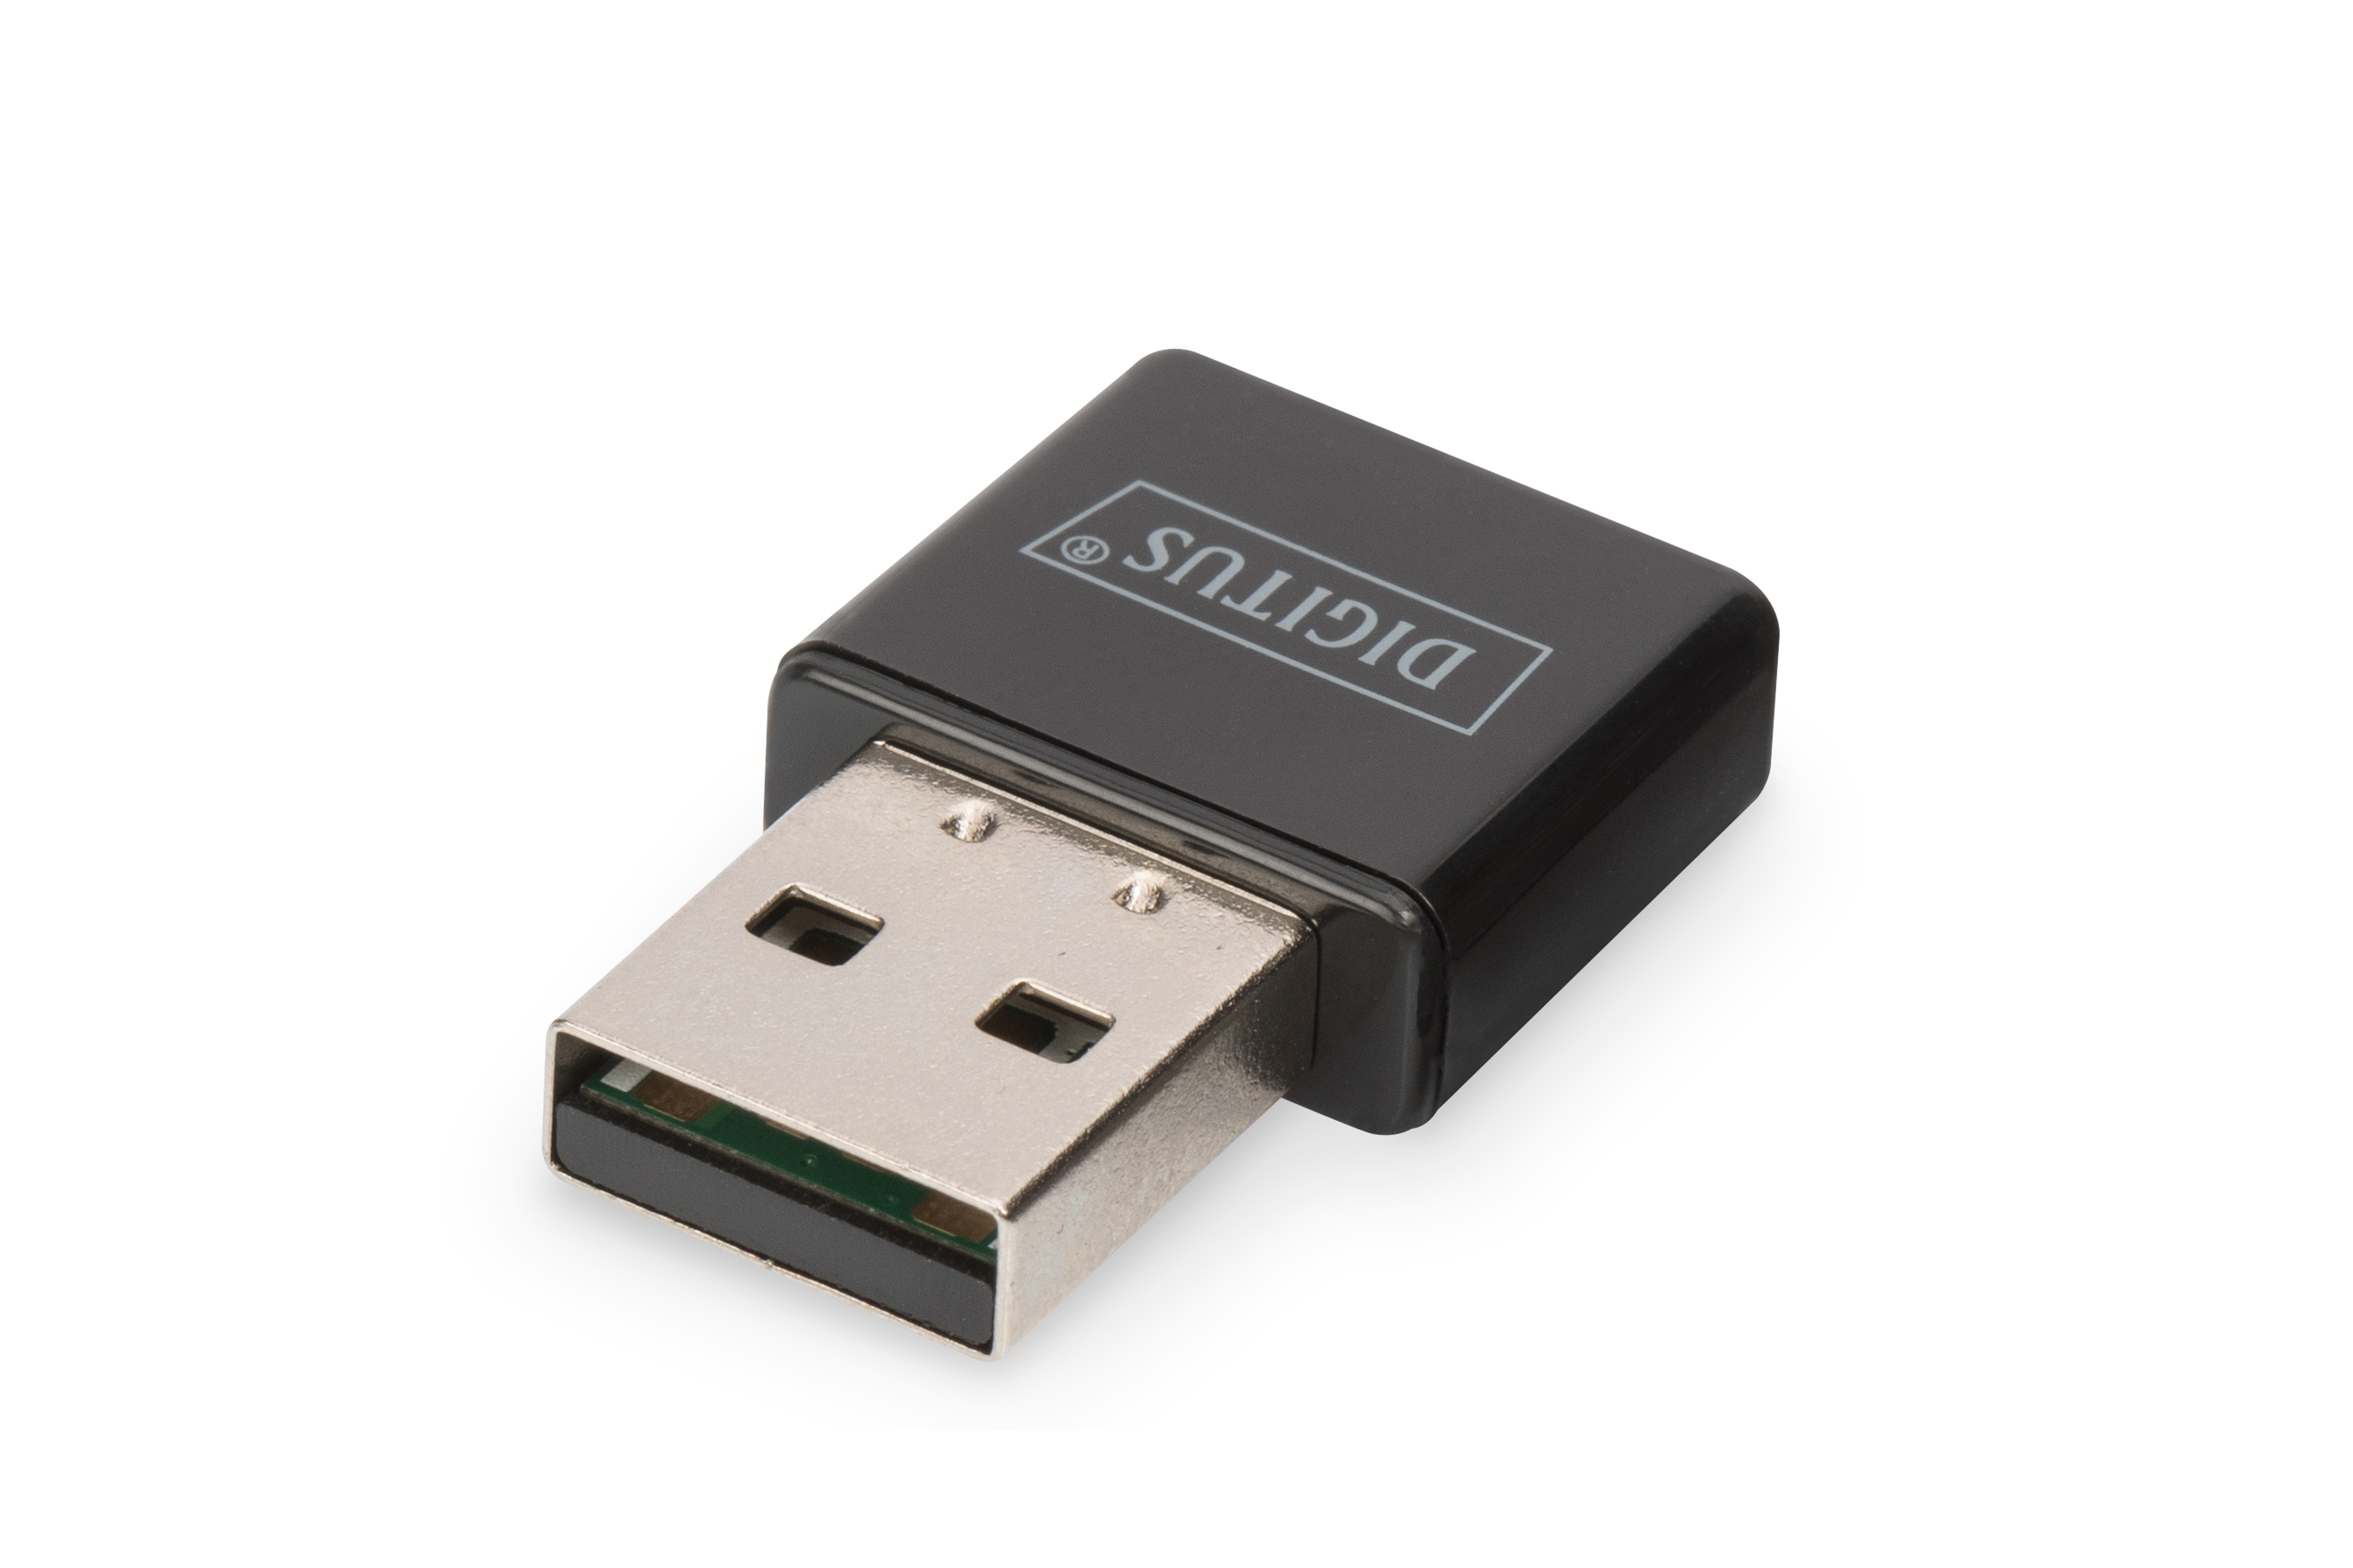 DIGITUS USB 2.0 Adapter Tiny Wireless 300N